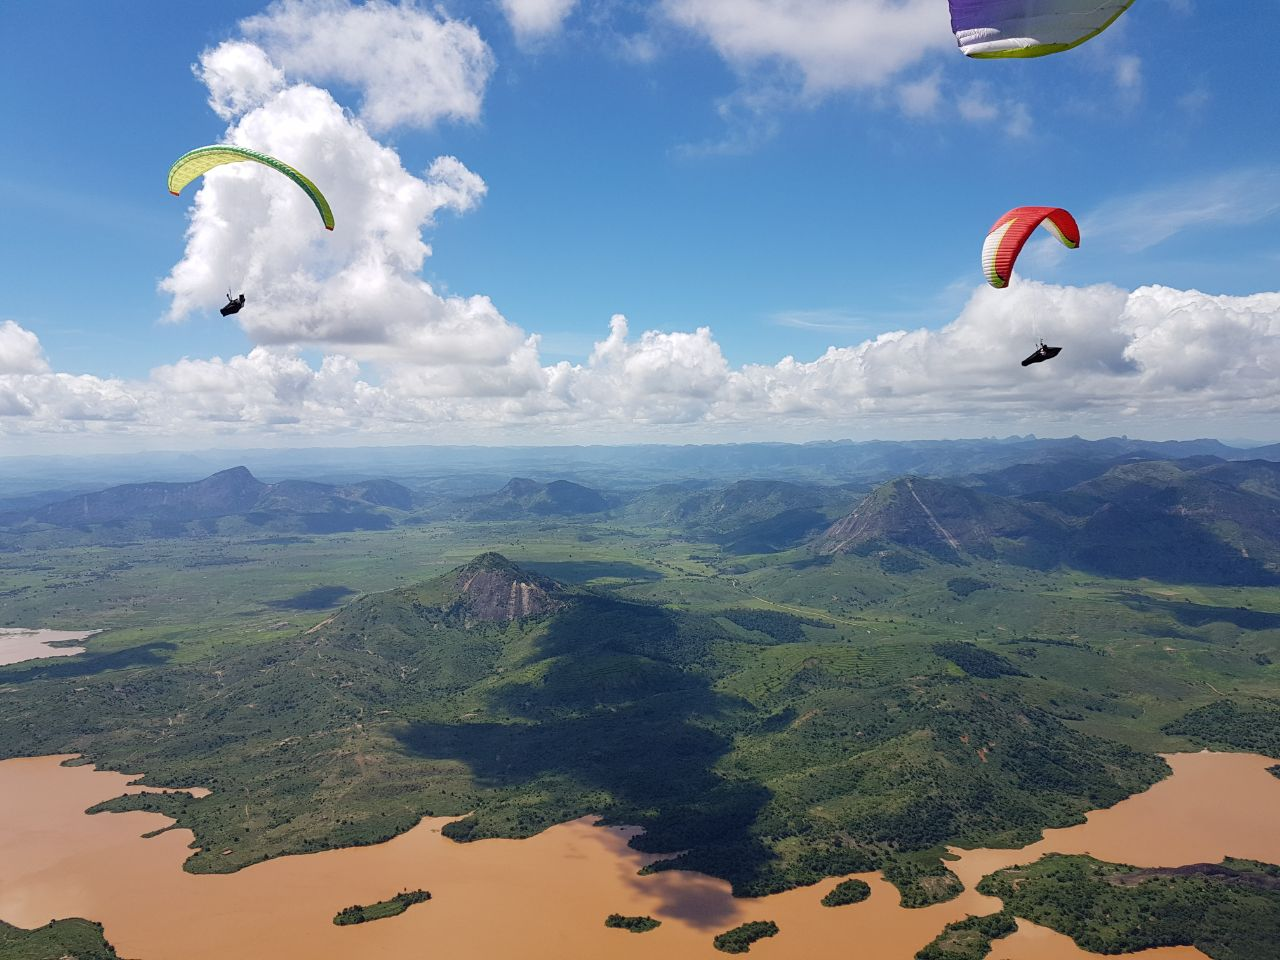 Brasil flying with FlySpain, winter paragliding tours